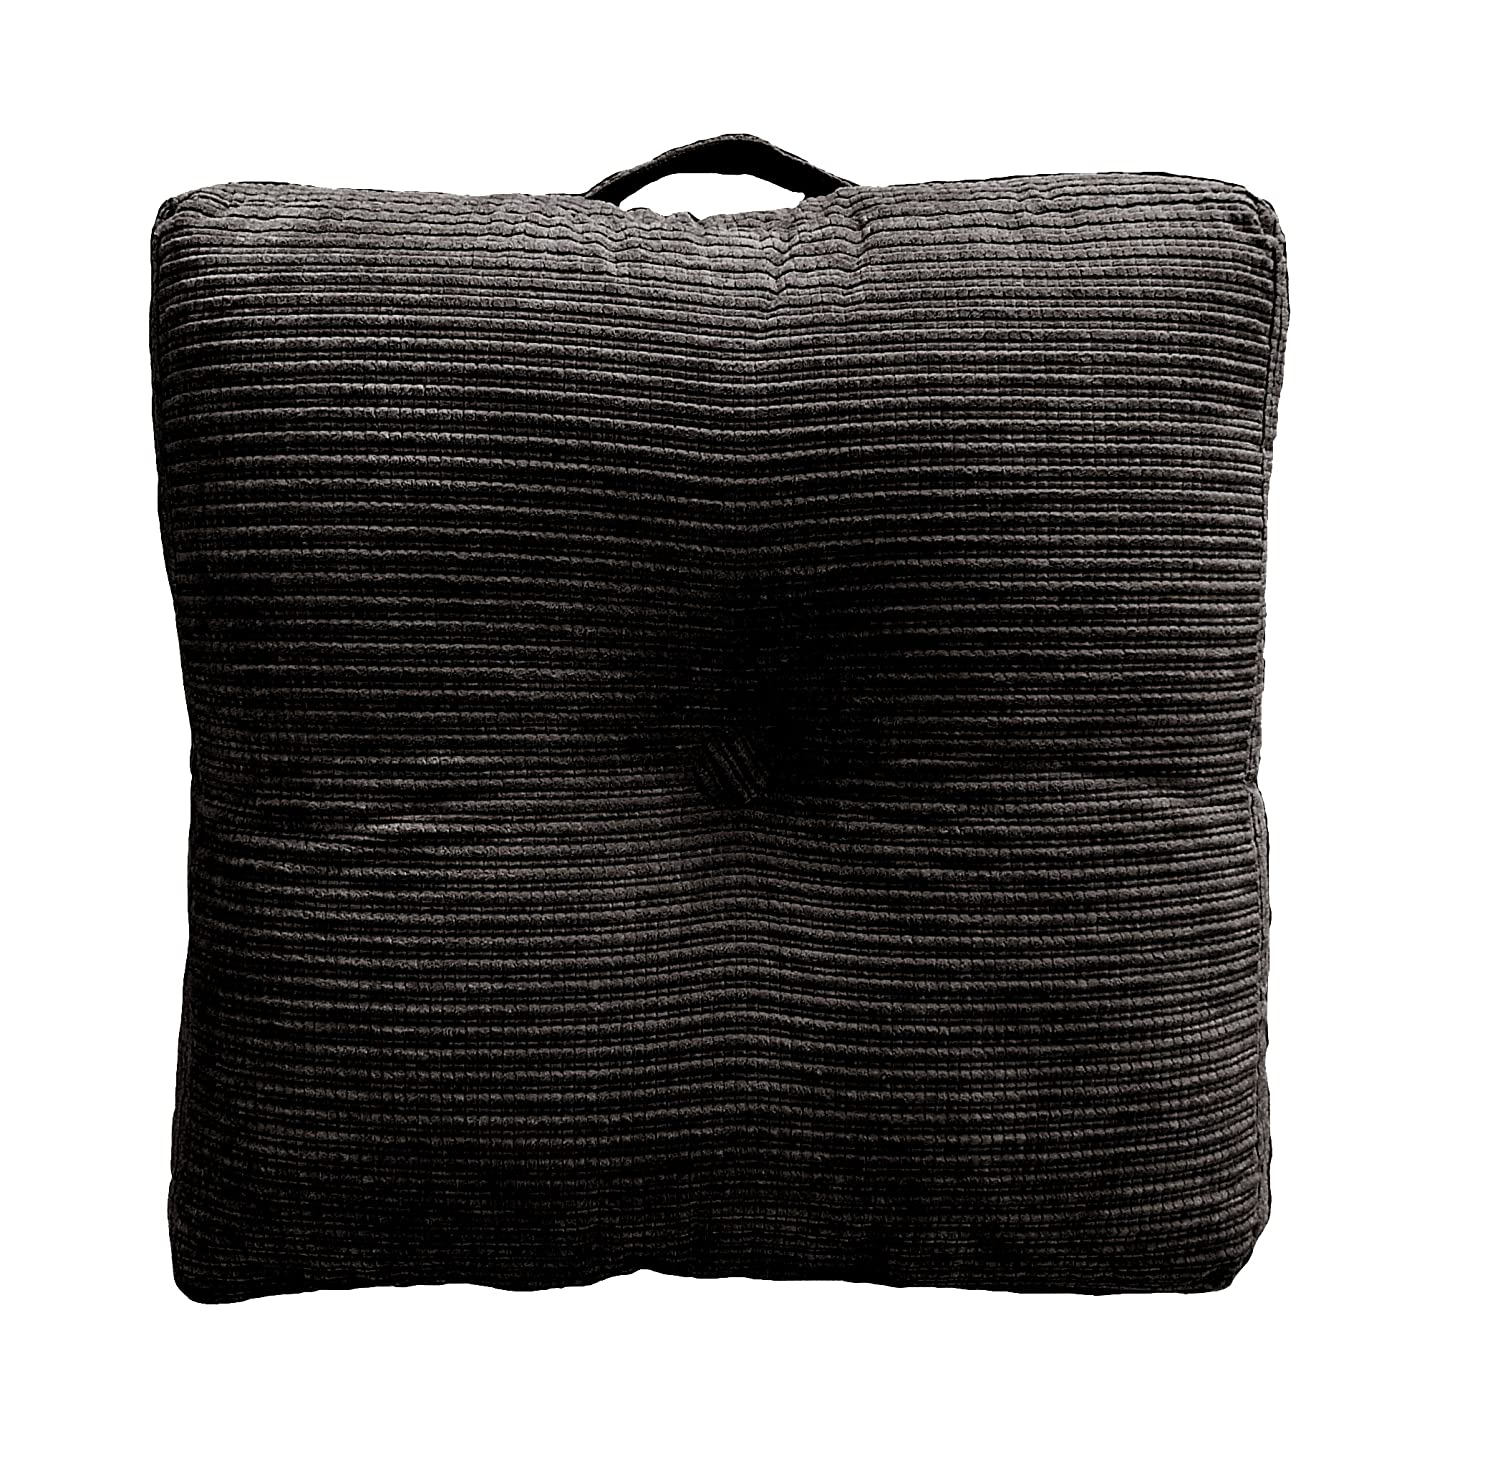 Amazon.com: Elements Perry Oversized Floor Cushion, Midnight: Home ...